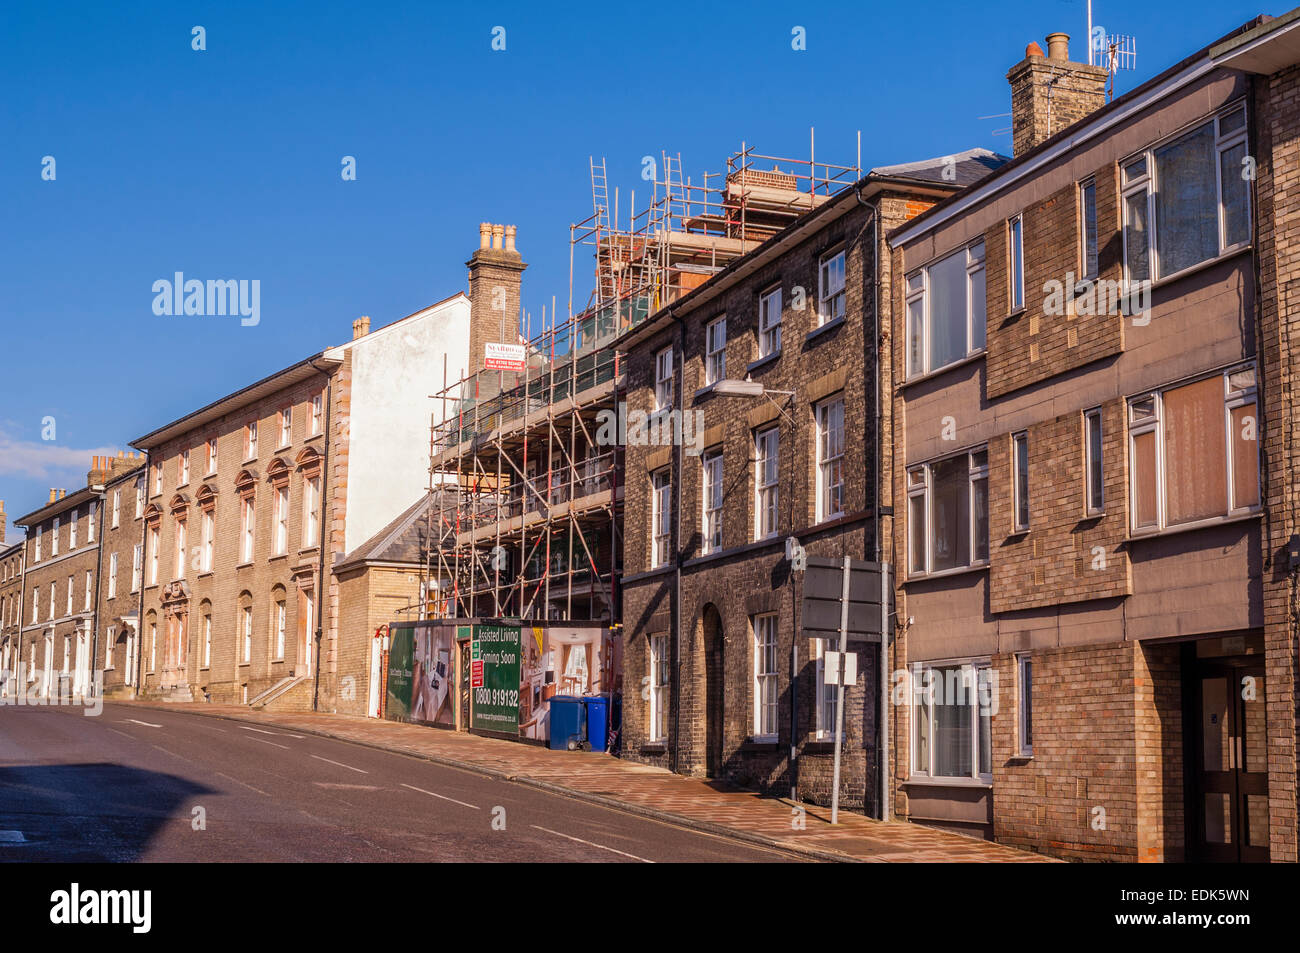 Scaffolding on a large house in a UK street - Stock Image